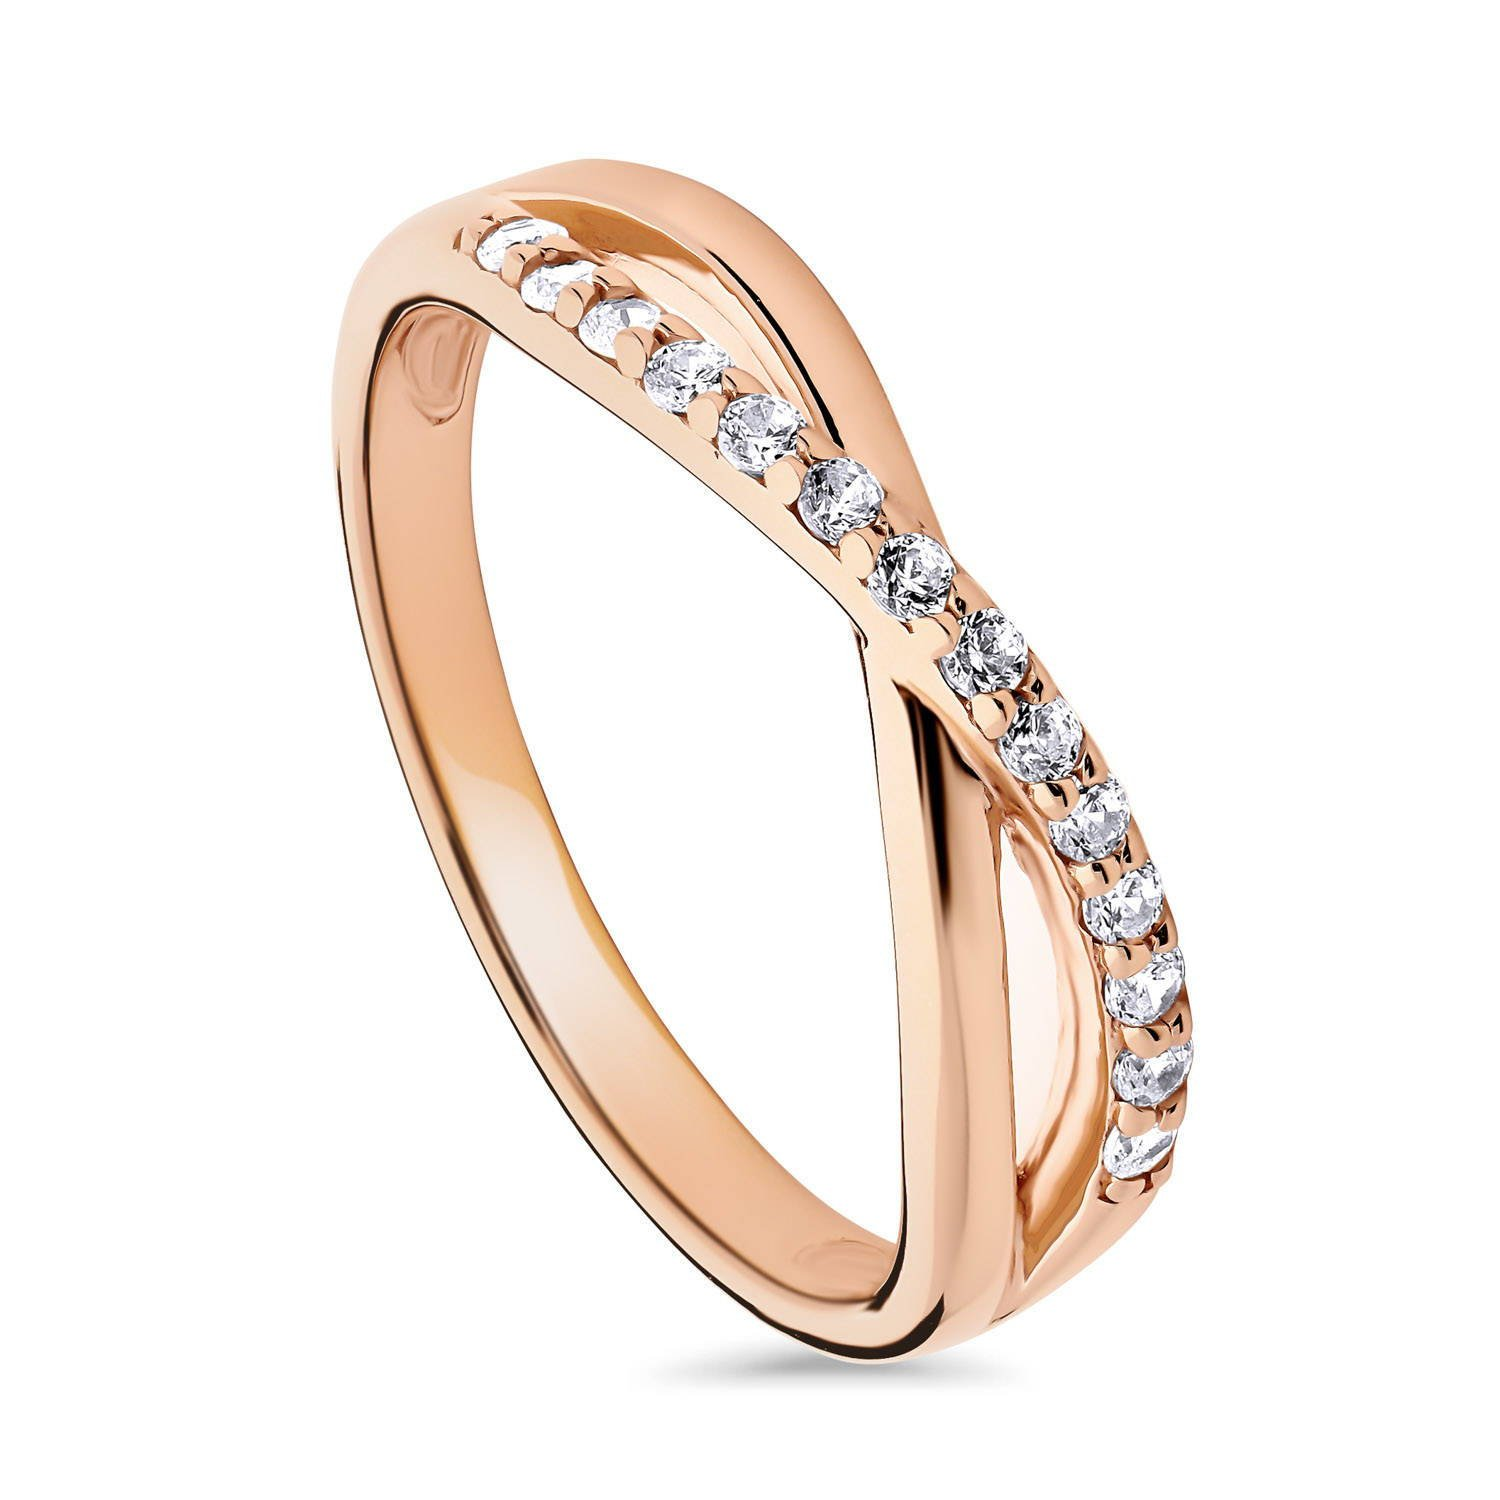 BERRICLE Rose Gold Plated Sterling Silver Cubic Zirconia CZ Infinity Ring Size 6